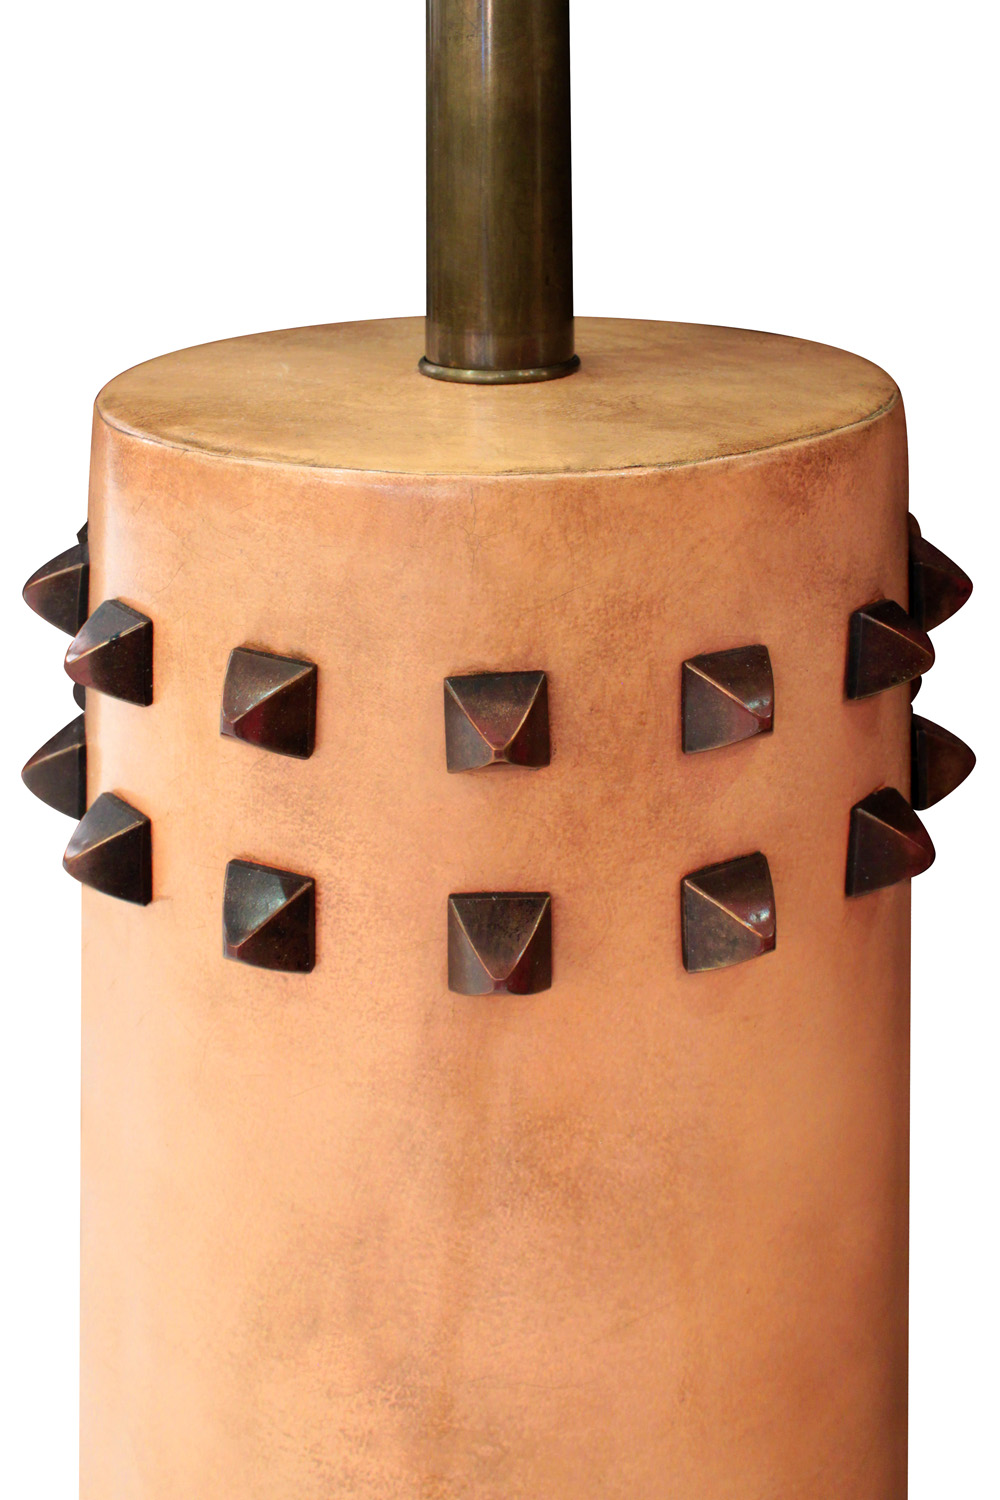 French 100 40s leather studded tablelamps323 detail1 hires.jpg